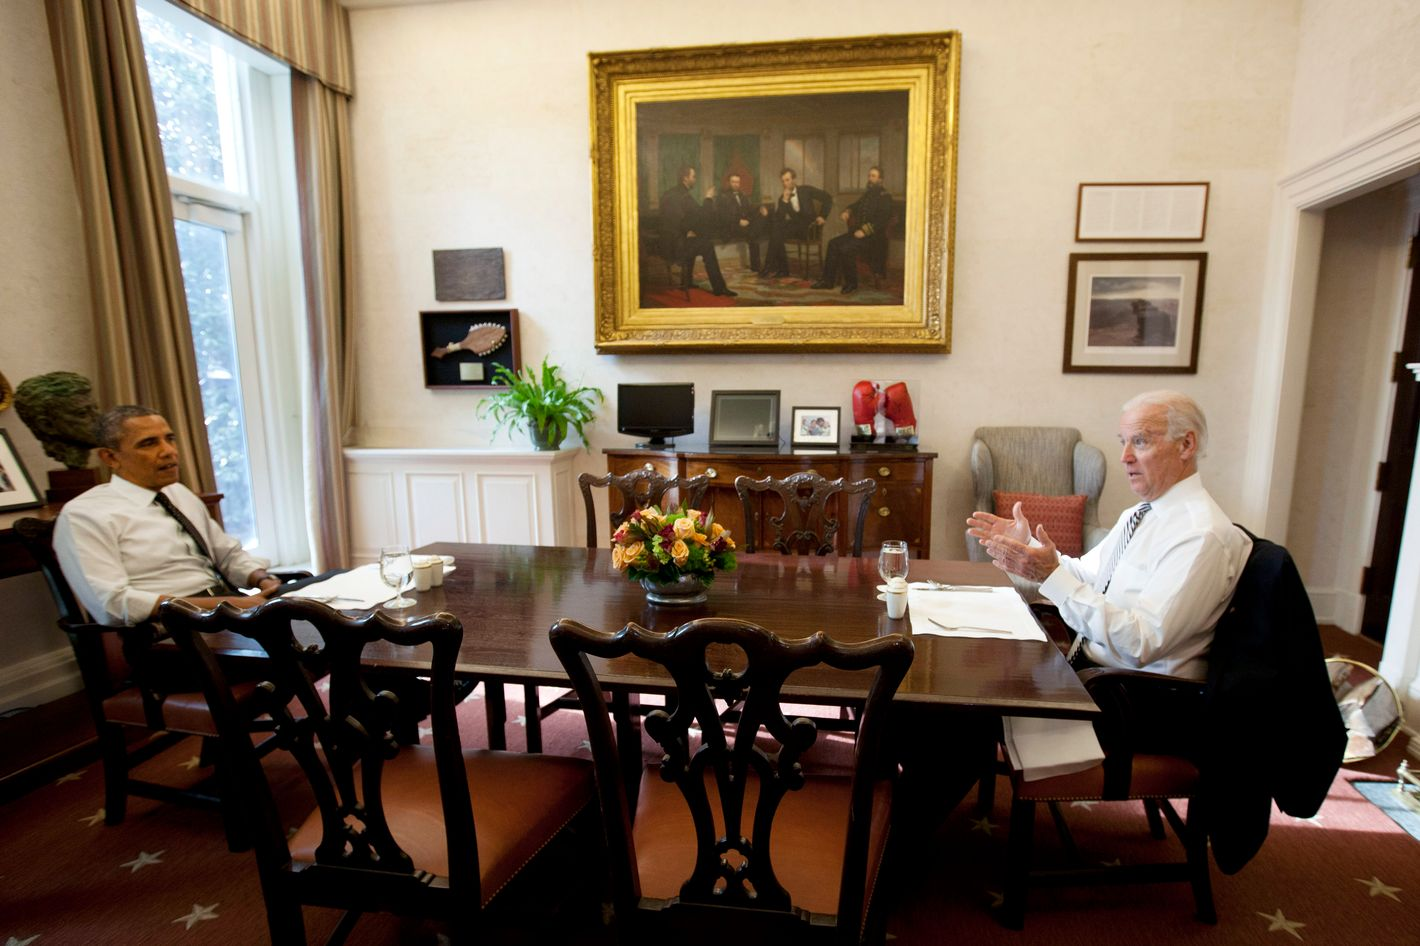 WASHINGTON, DC - JANUARY 8:  U.S. President Barack Obama and U.S. Vice President Joe Biden meet for lunch in the Private Dining Room of the White House January 8, 2014 in Washington DC. According to reports,   (Photo by Aude Guerrucci-Pool/Getty Images)